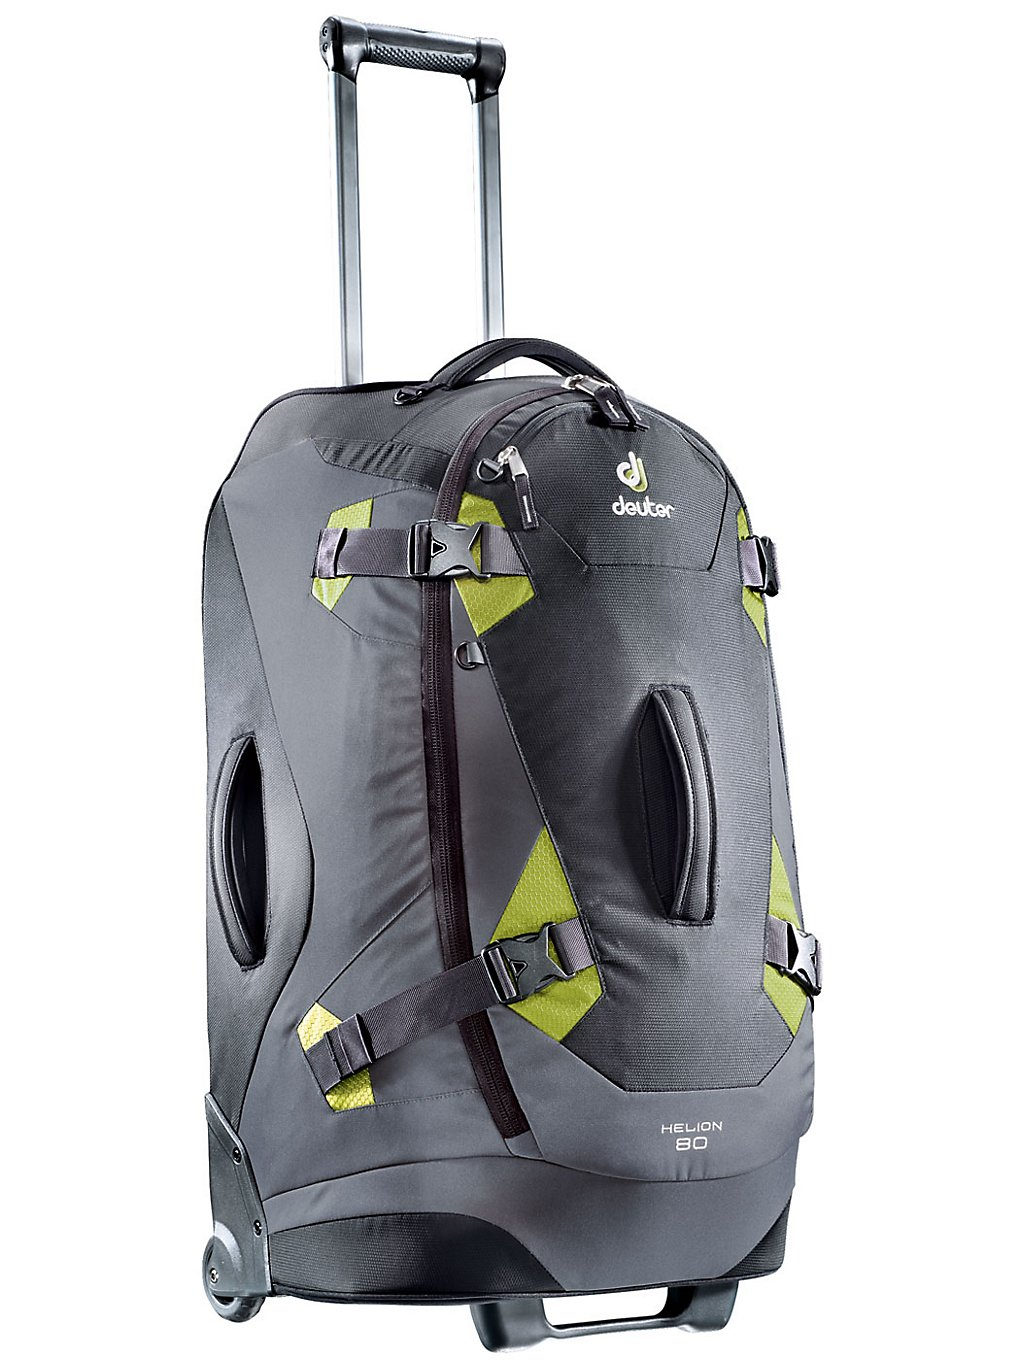 Image of Deuter Helion 80 Travelbag